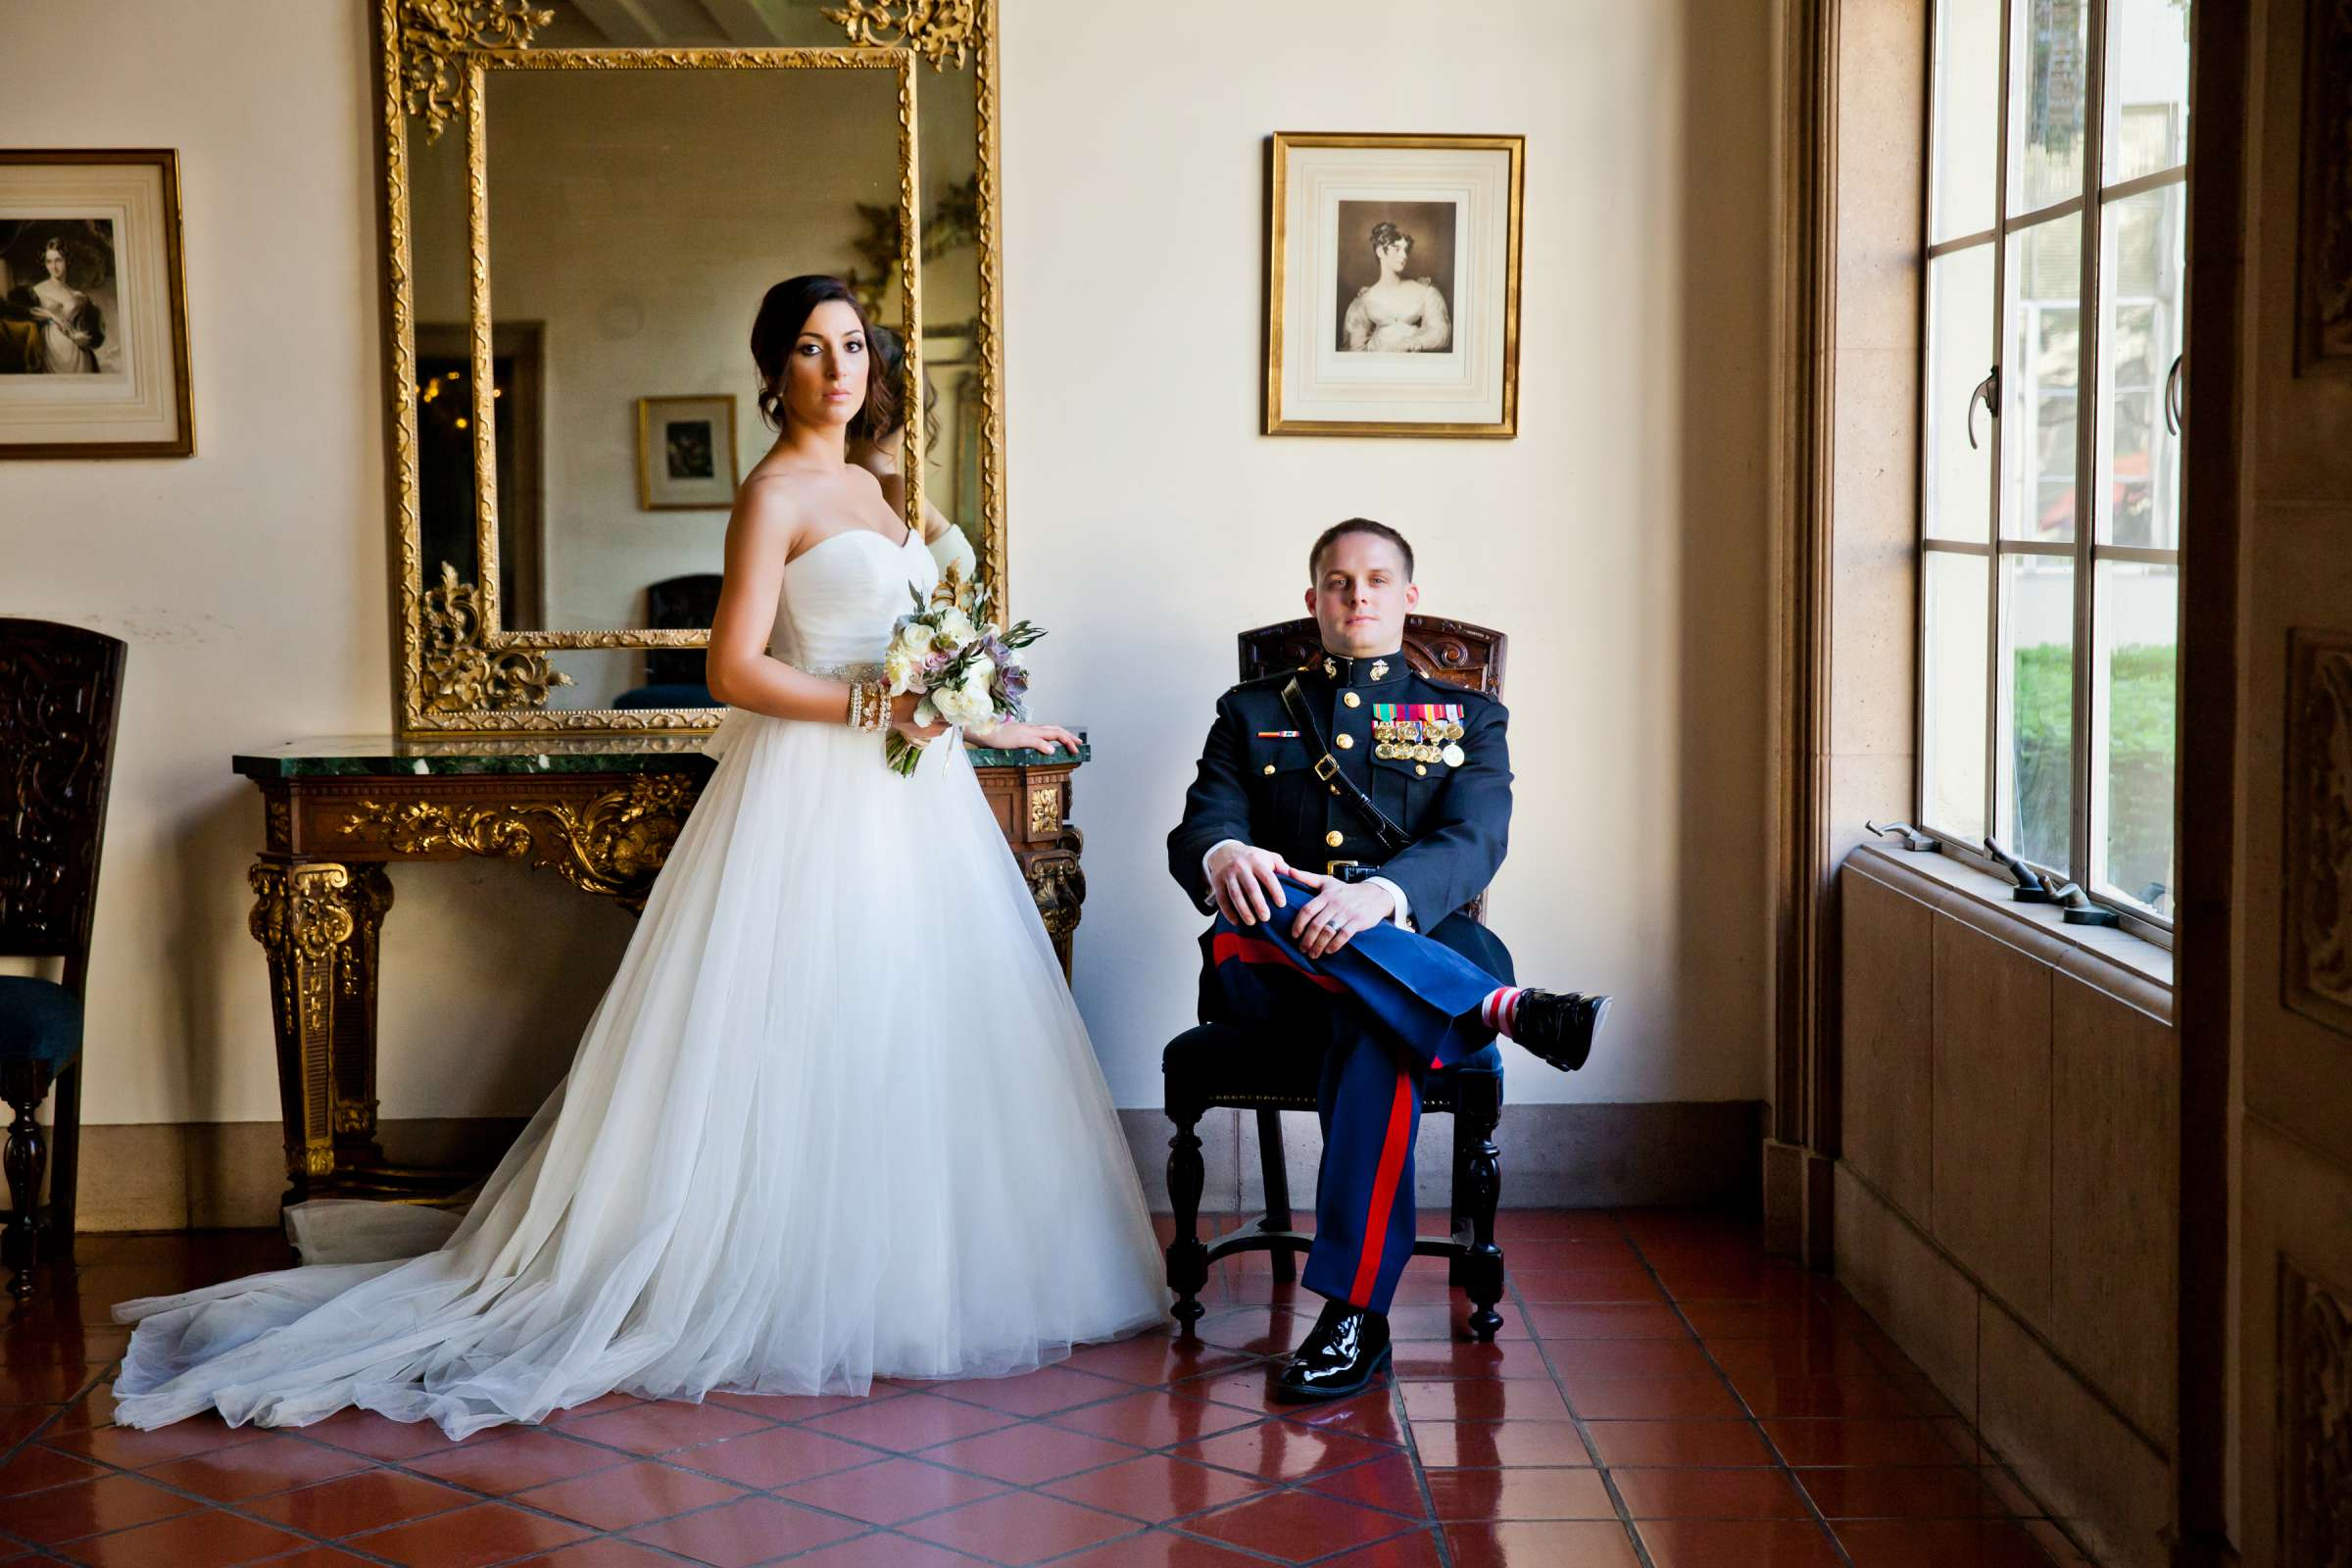 Admiral Kidd Club Wedding coordinated by Founders Chapel, Ashley and Andrew Wedding Photo #145359 by True Photography